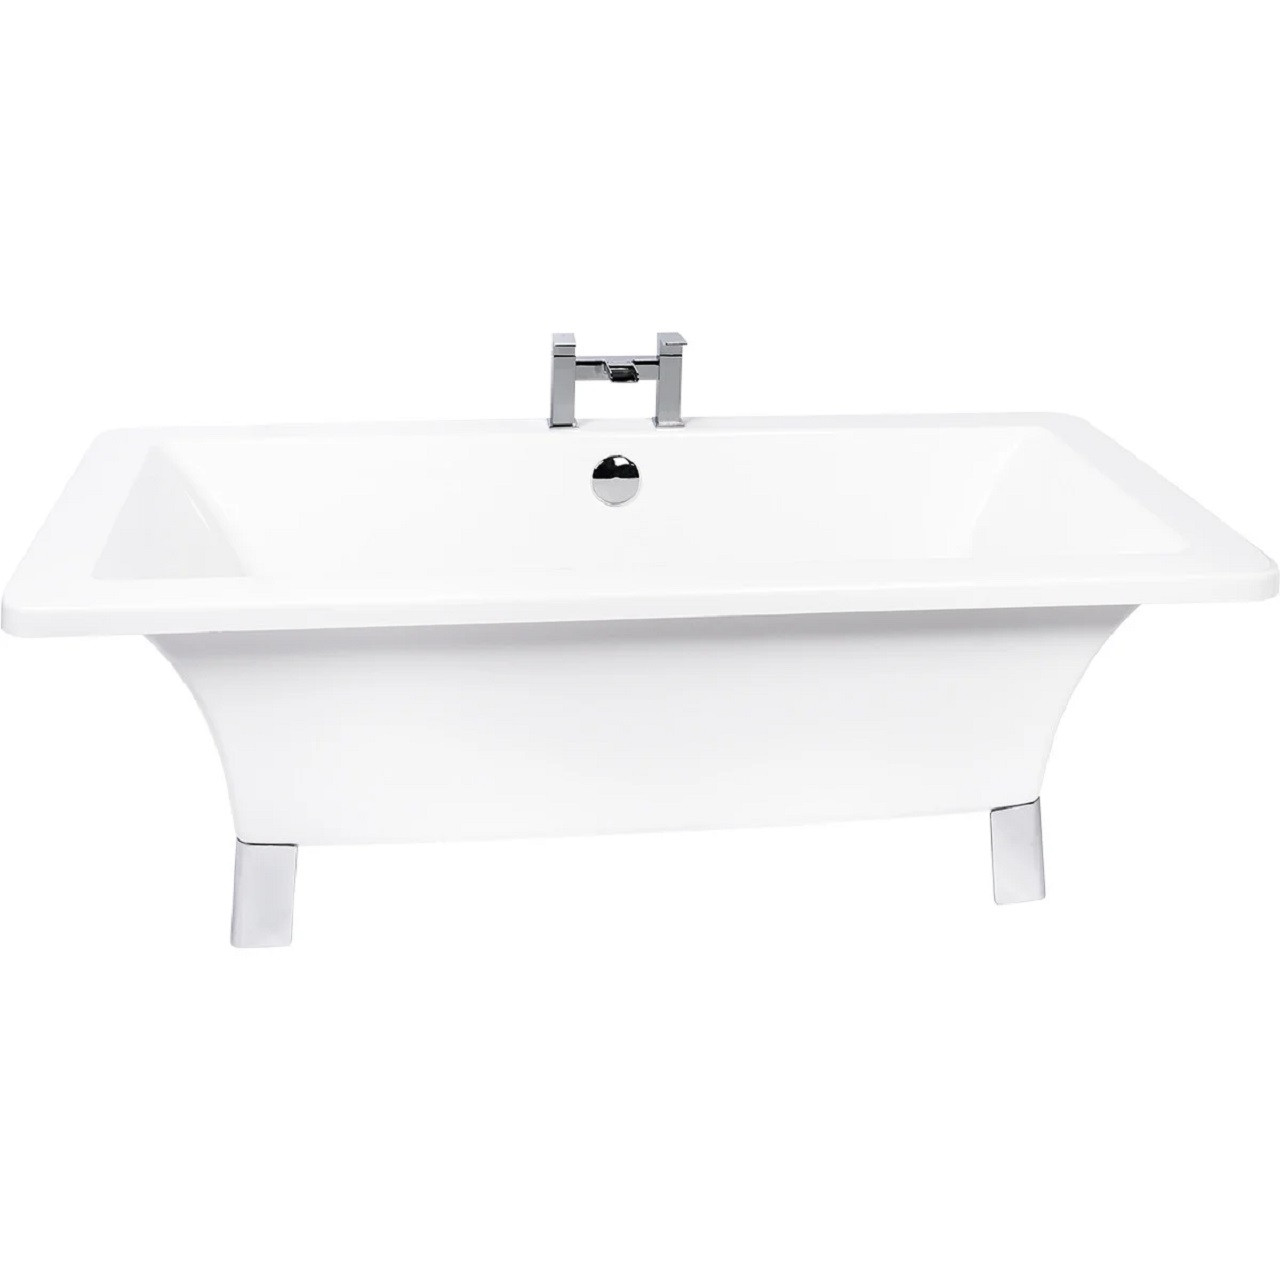 Livorno 1590mm x 745mm Double Ended Freestanding Bath with Chrome Square Feet